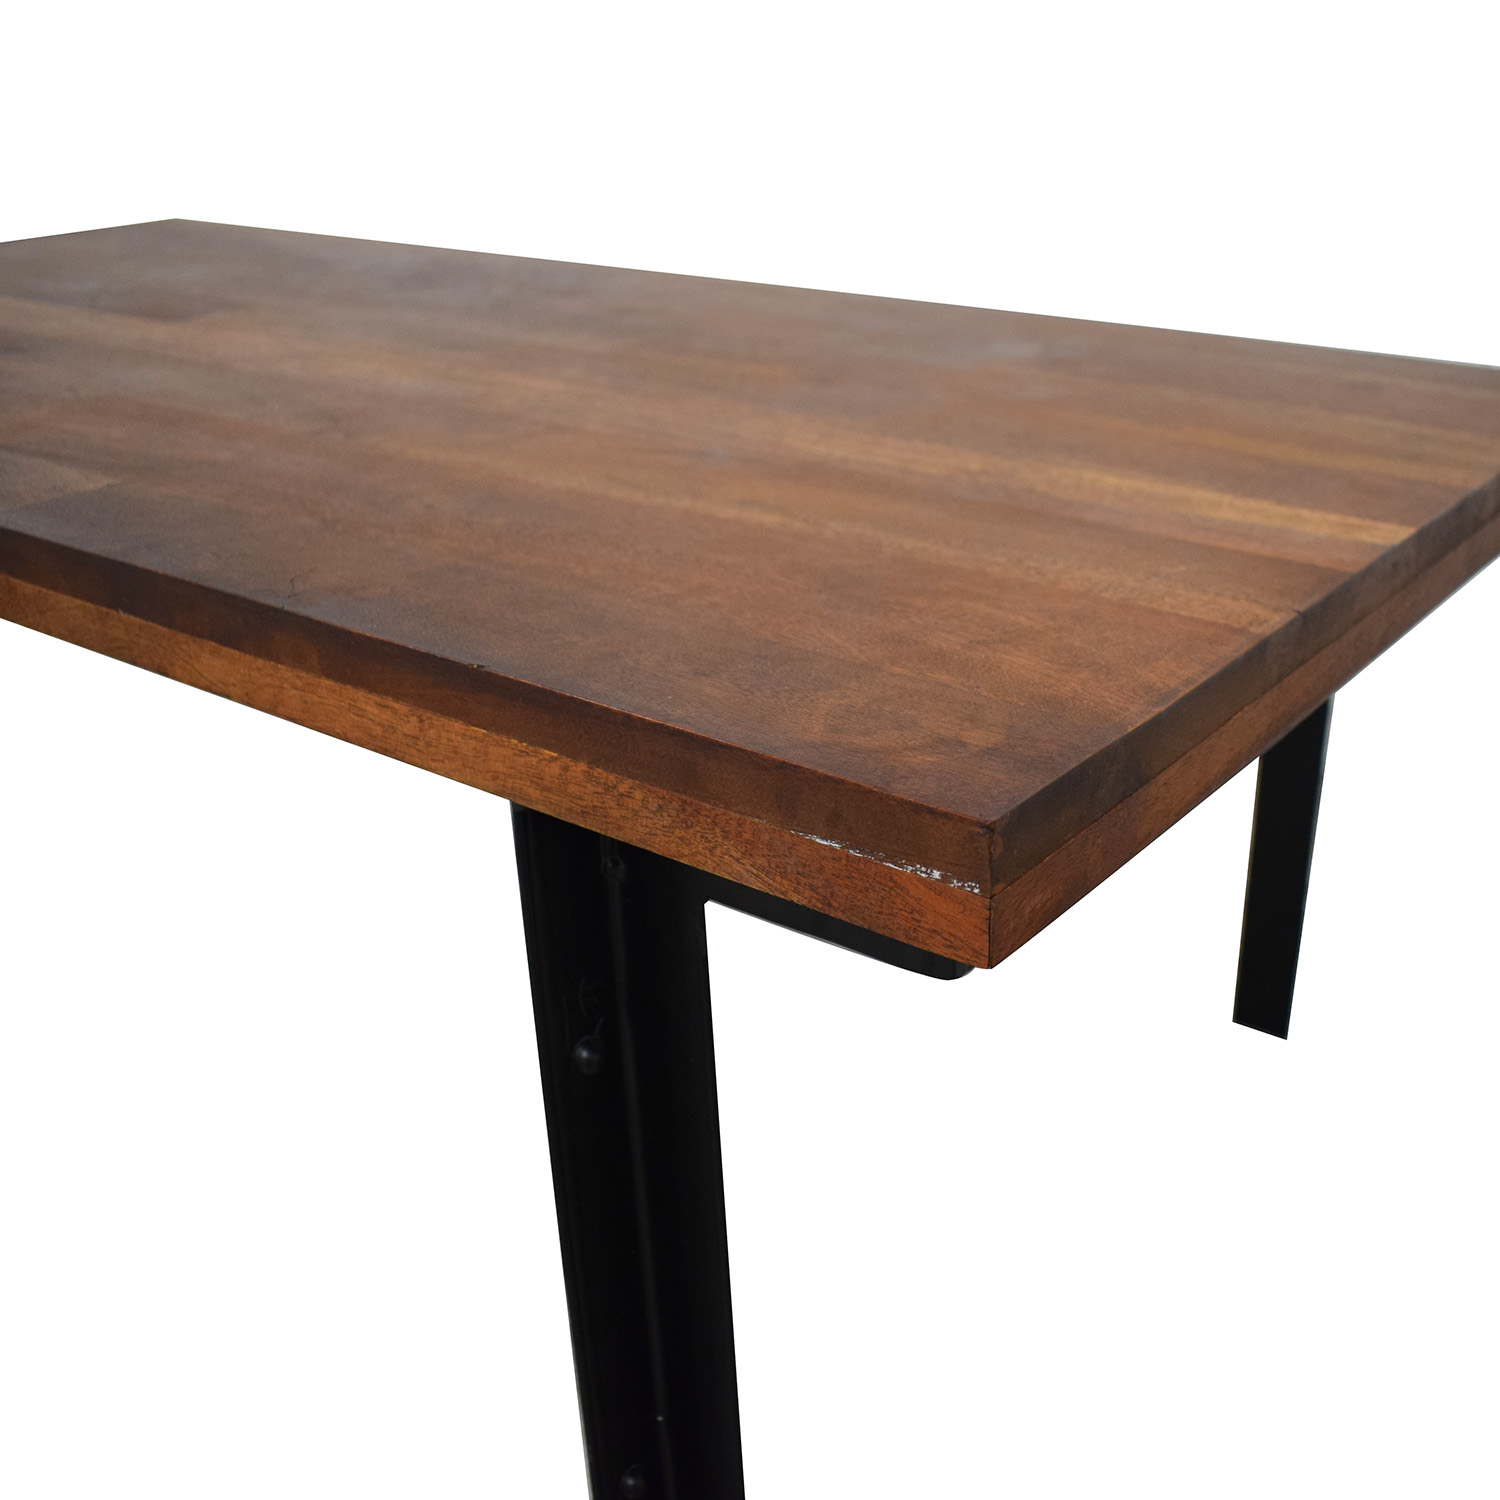 West Elm West Elm Industrial Coffee Table discount